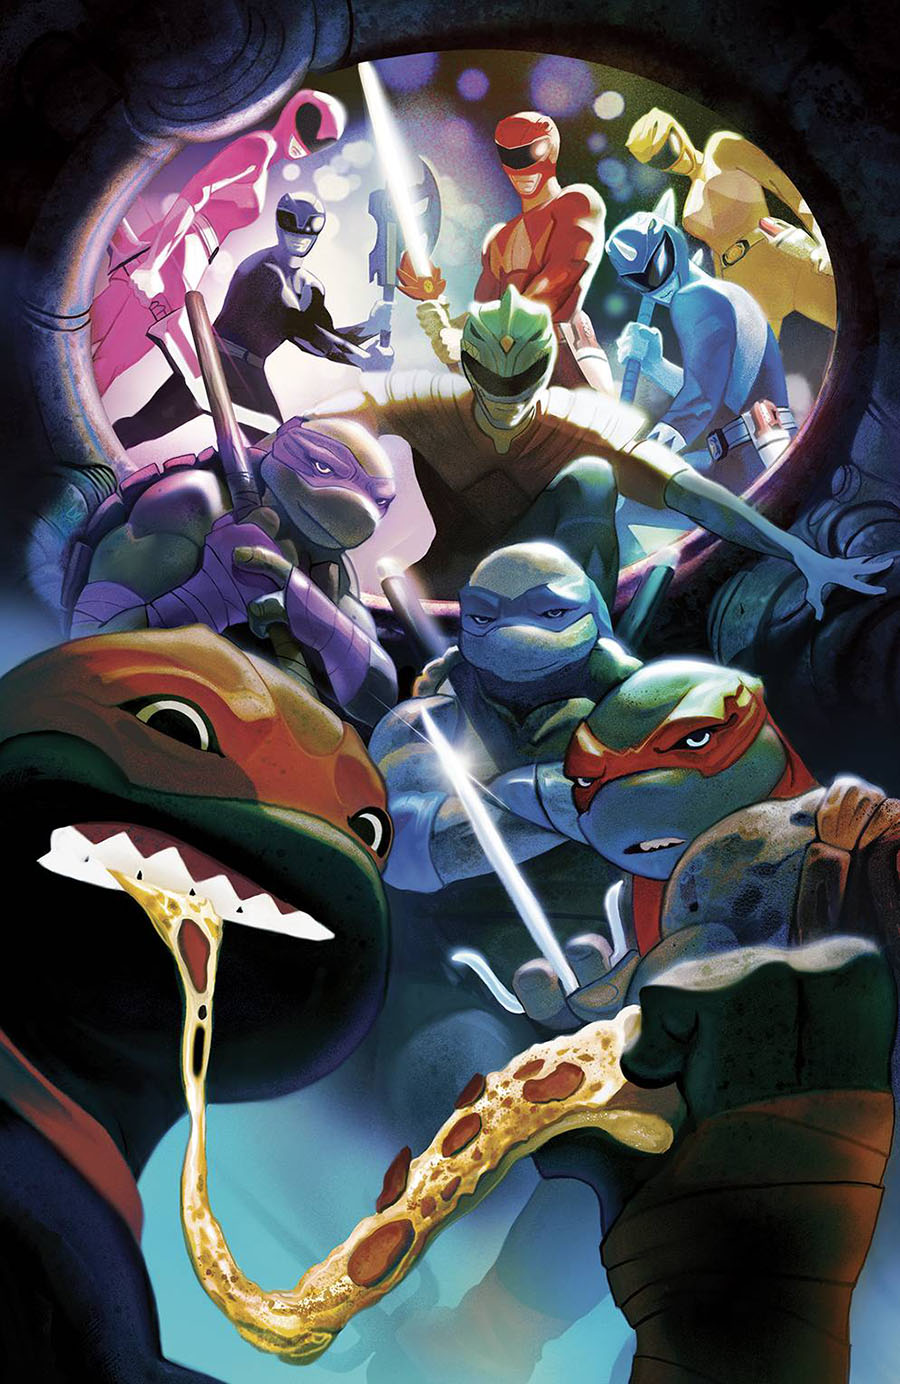 Mighty Morphin Power Rangers Teenage Mutant Ninja Turtles #5 Cover H Incentive Mike Del Mundo Space Background Variant Cover